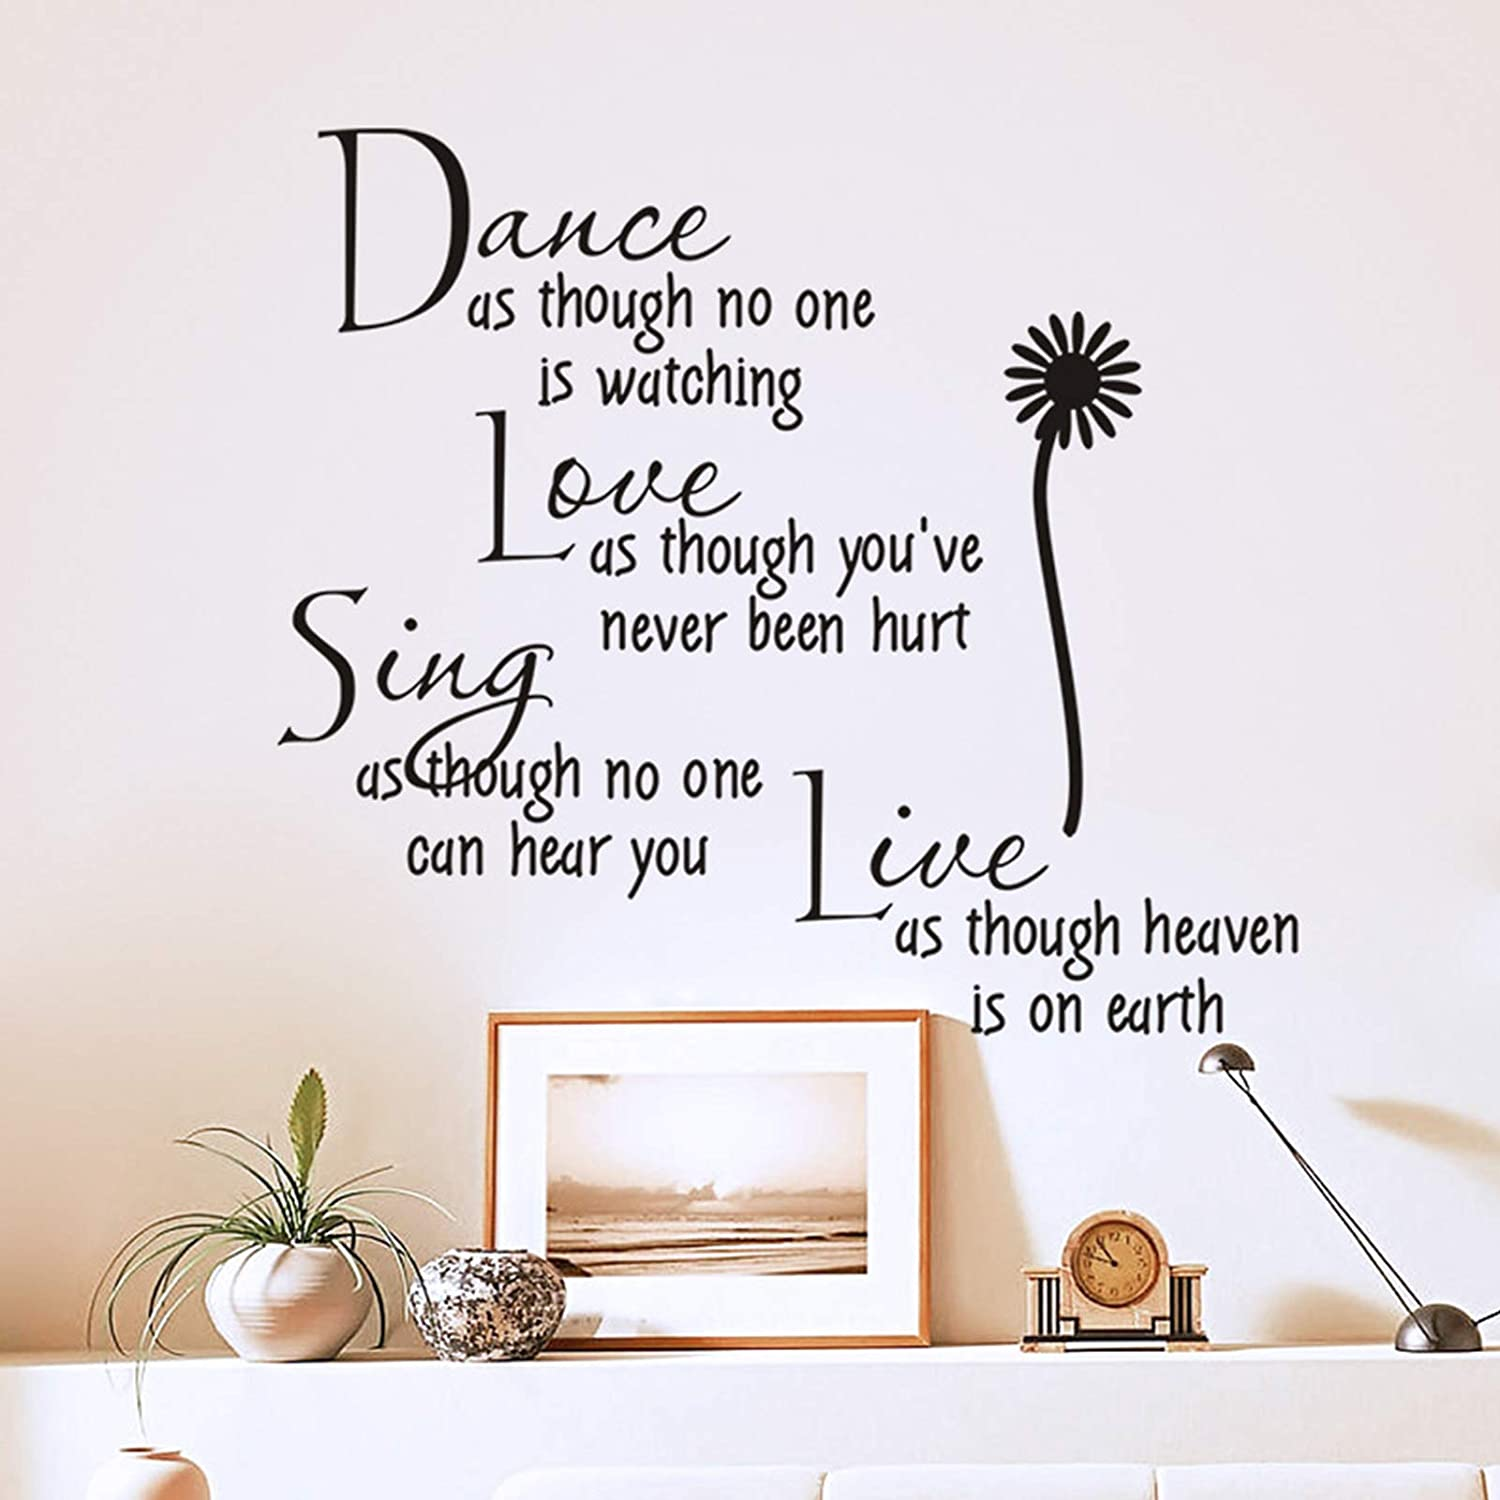 Daisy Wall Decor Sticker Words Quote Vinyl Decal, Removable Dance Love Sing Live Wall Inspirational Quotes, DIY Art Mural for Kitchen Women Bedroom Nursery Office Home Decoration(Black)